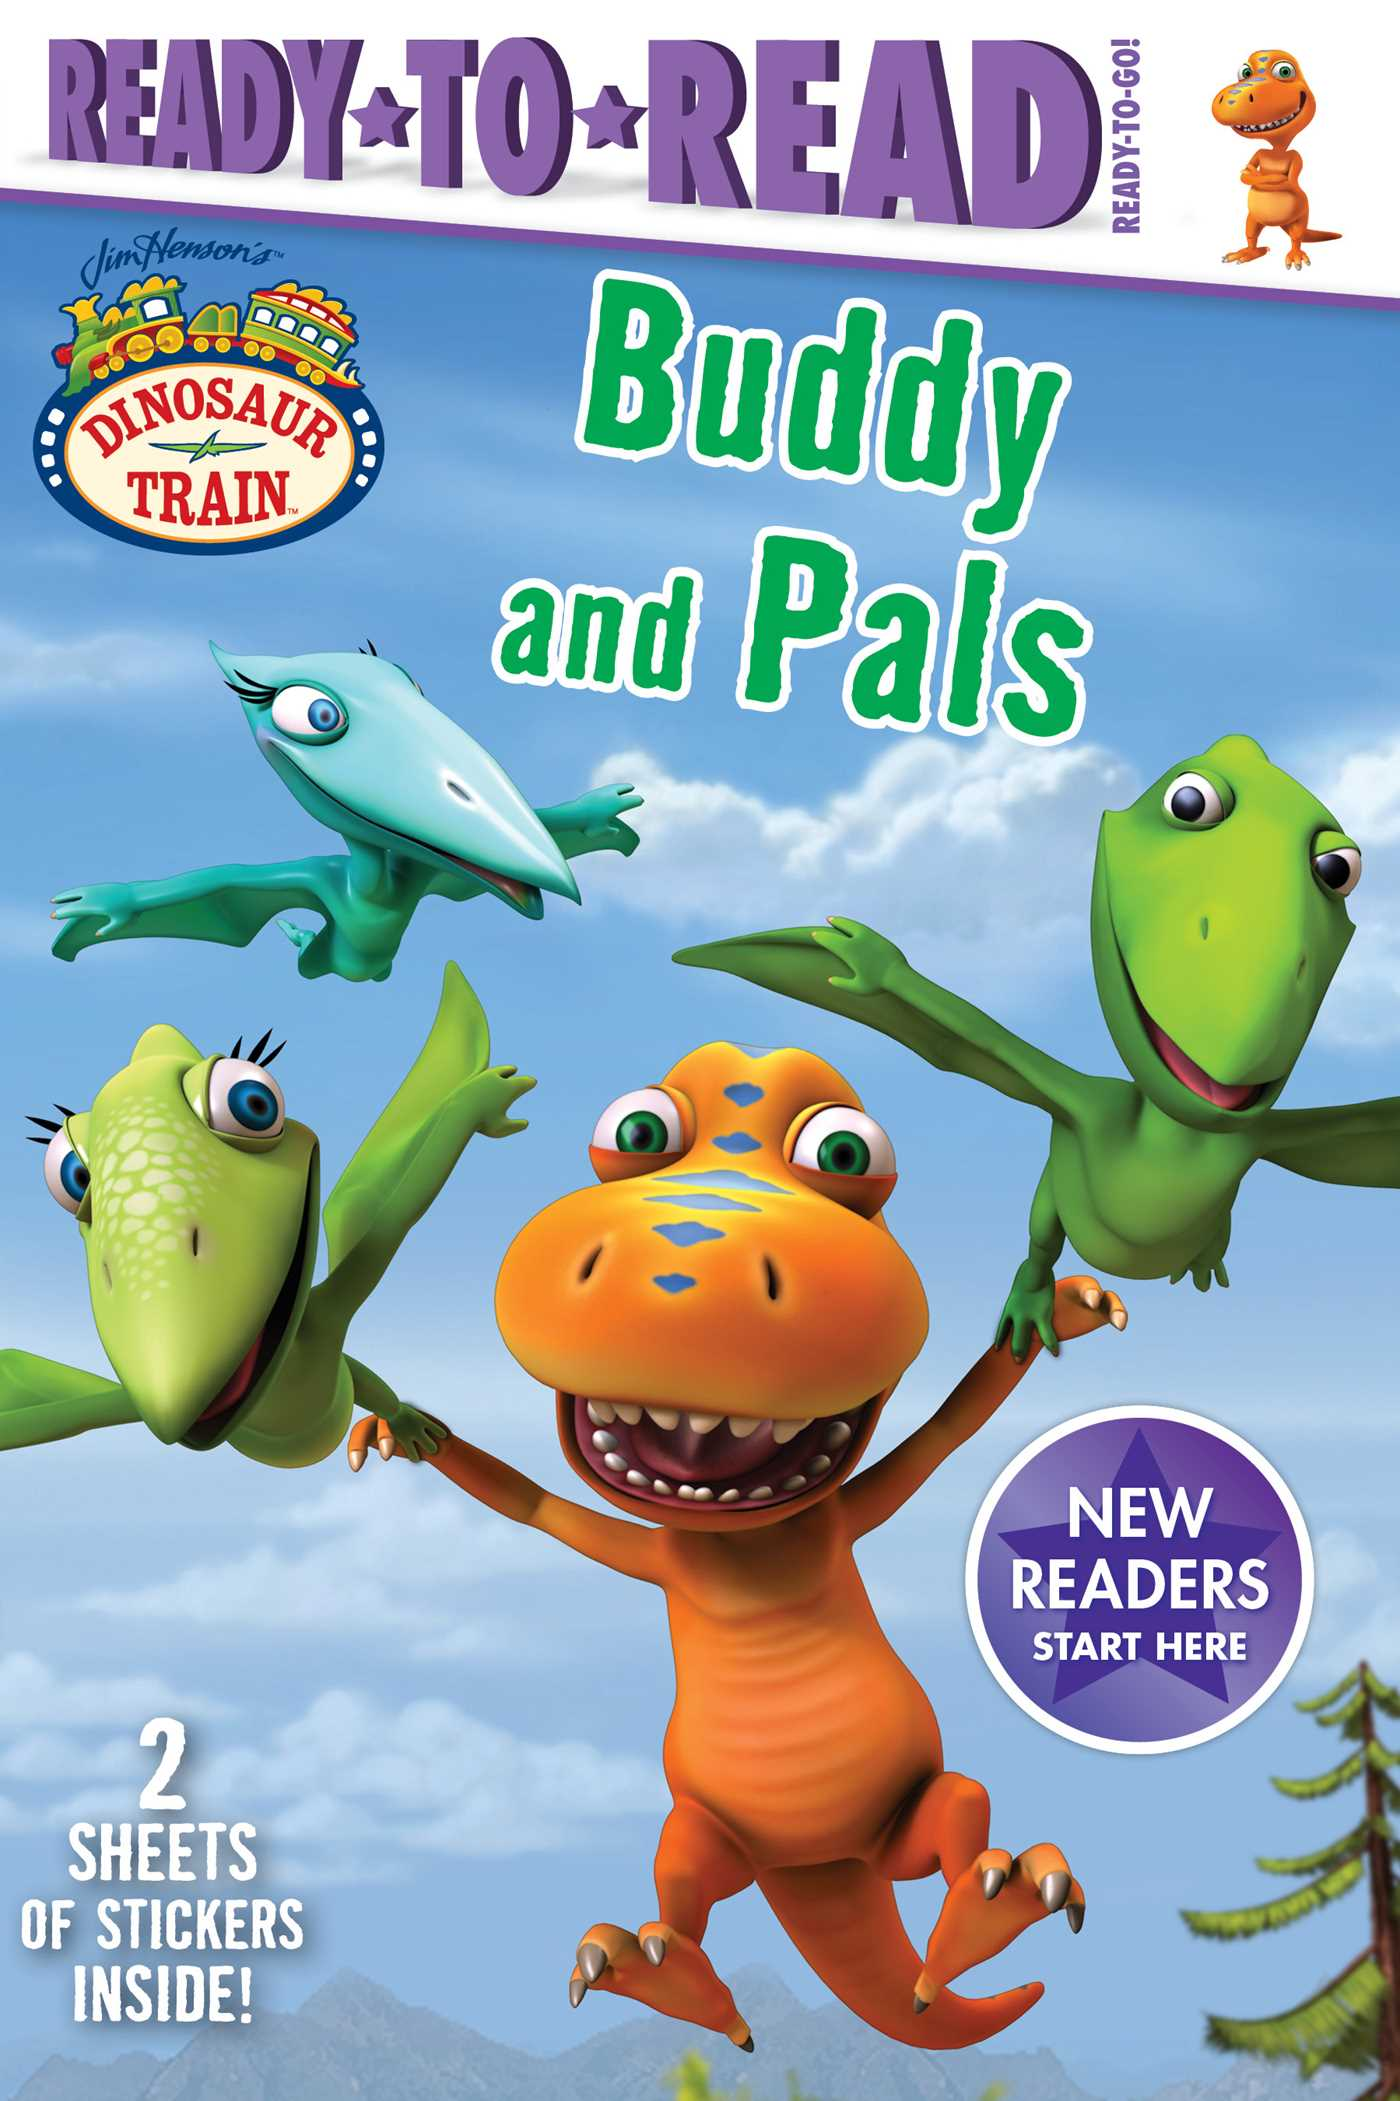 Buddy and pals 9781534409514 hr